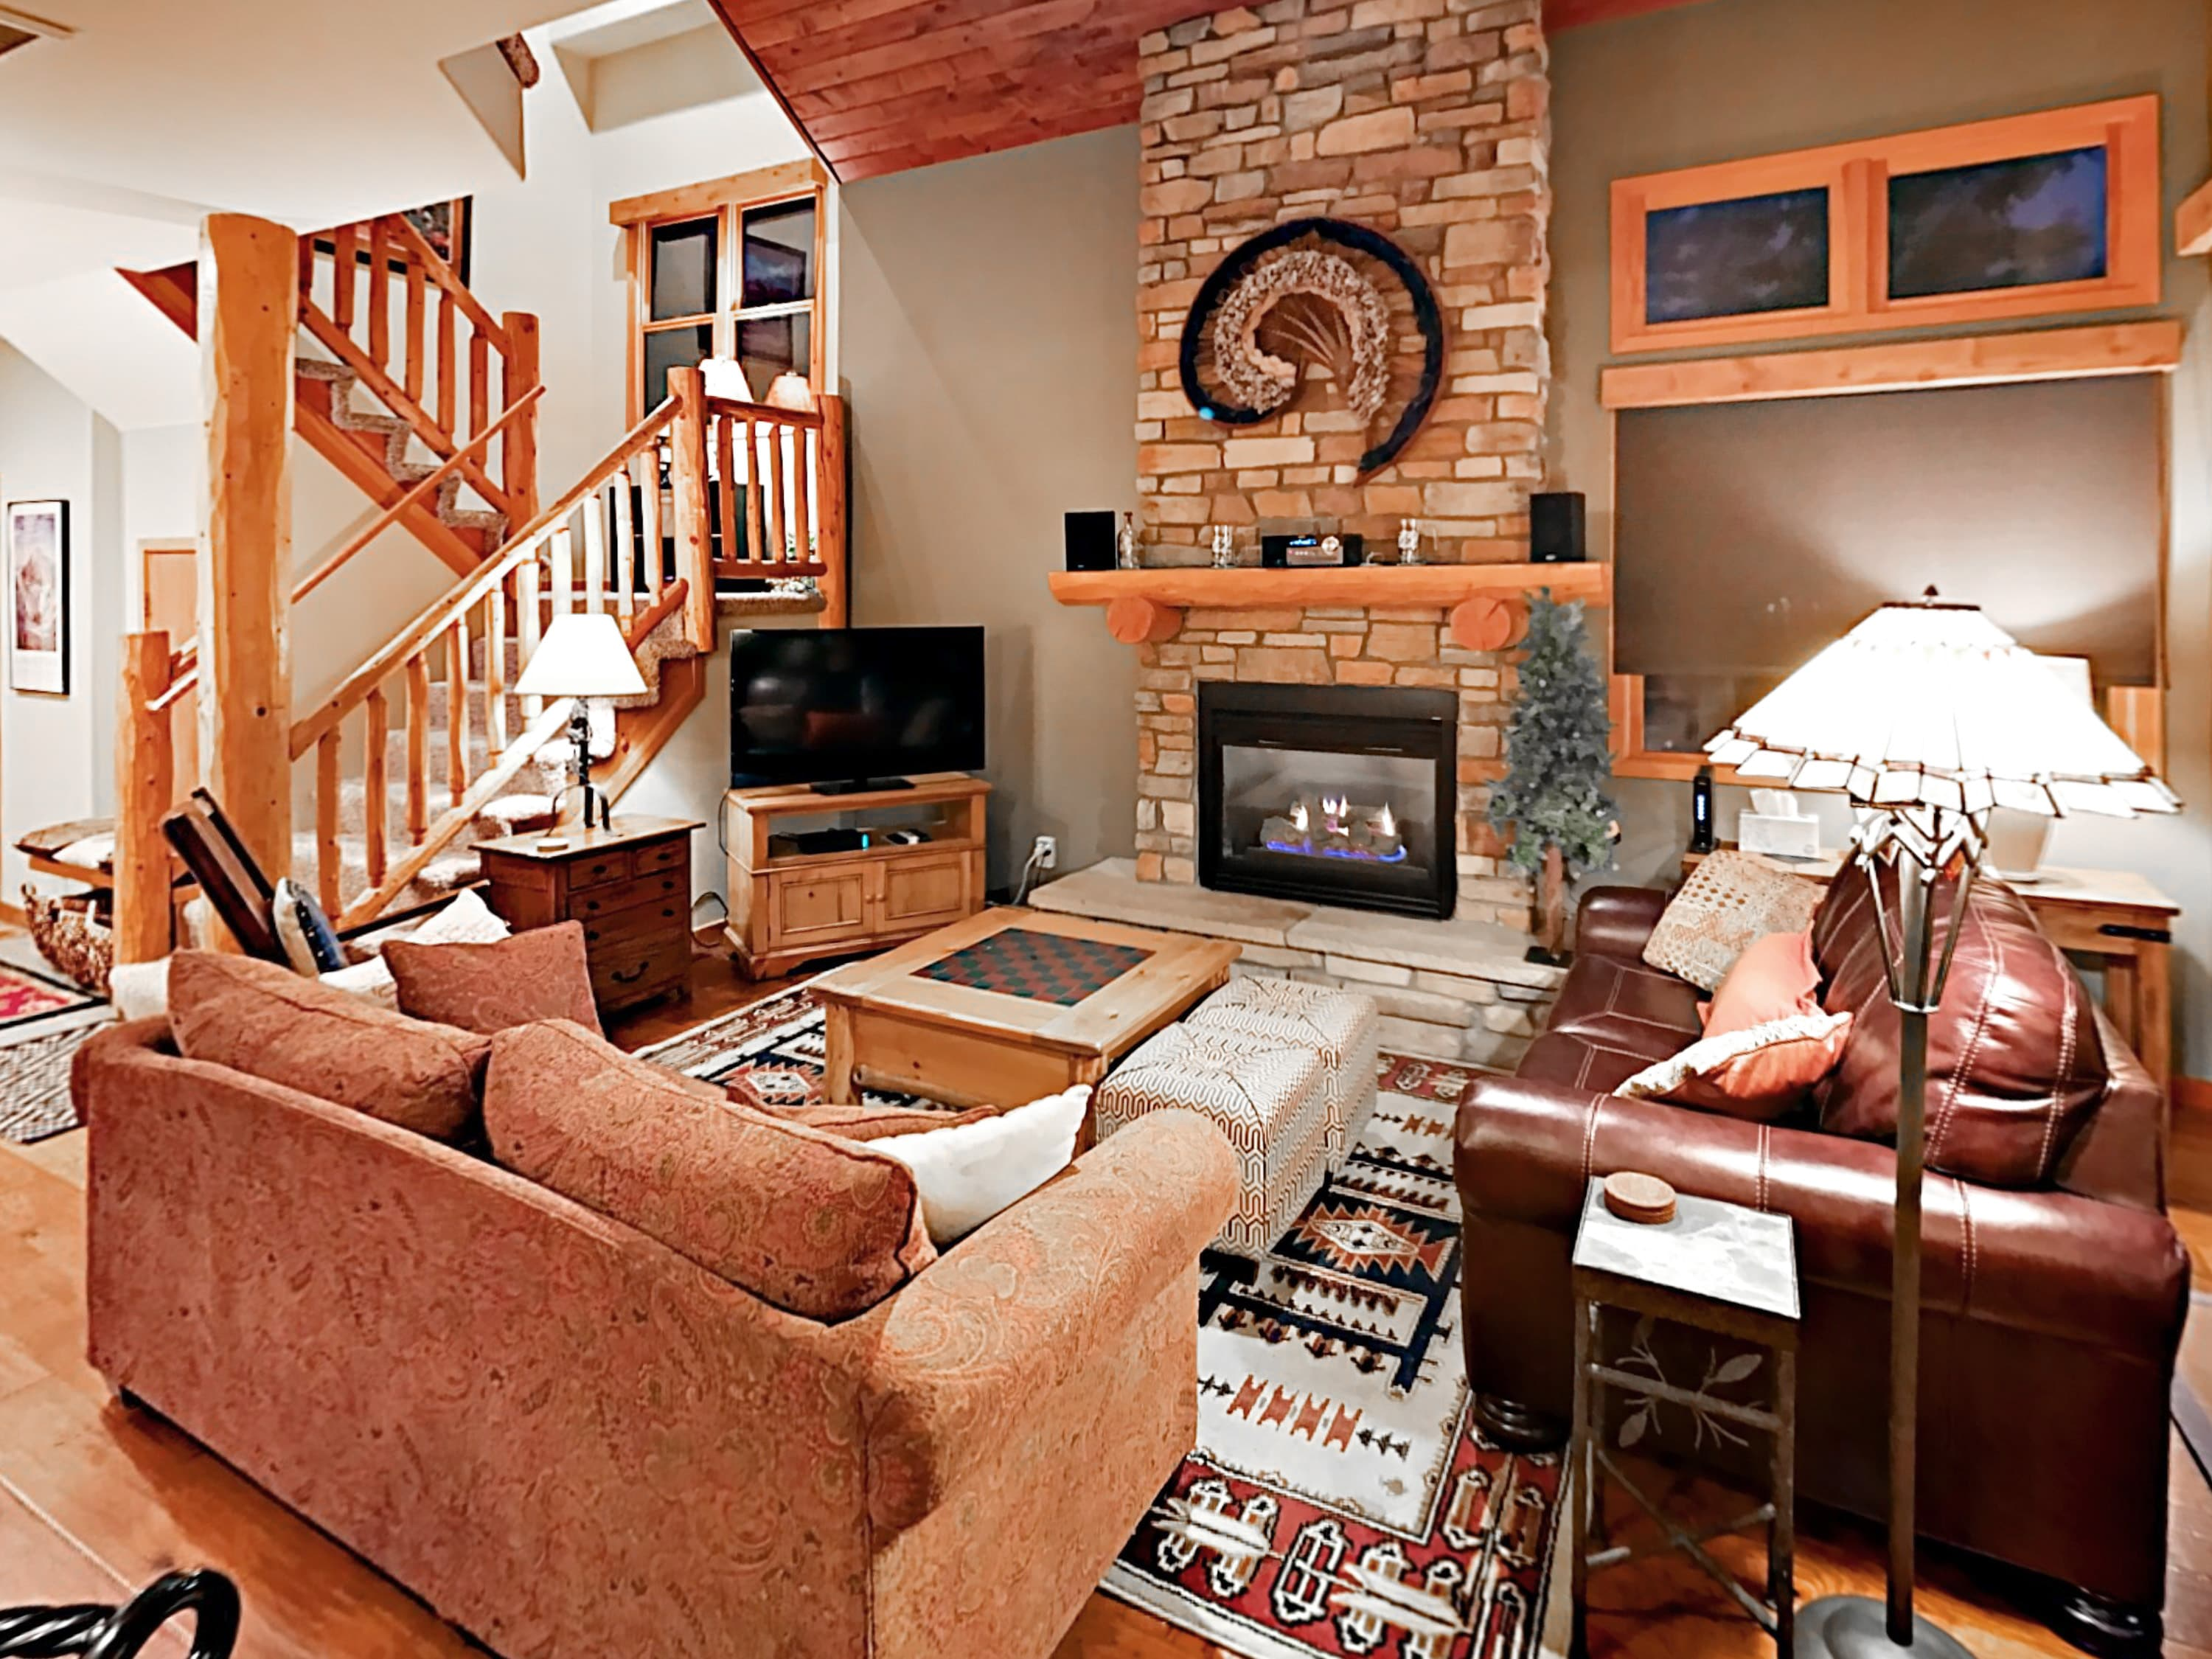 Welcome to Keystone! This townhome is professionally managed by TurnKey Vacation Rentals.